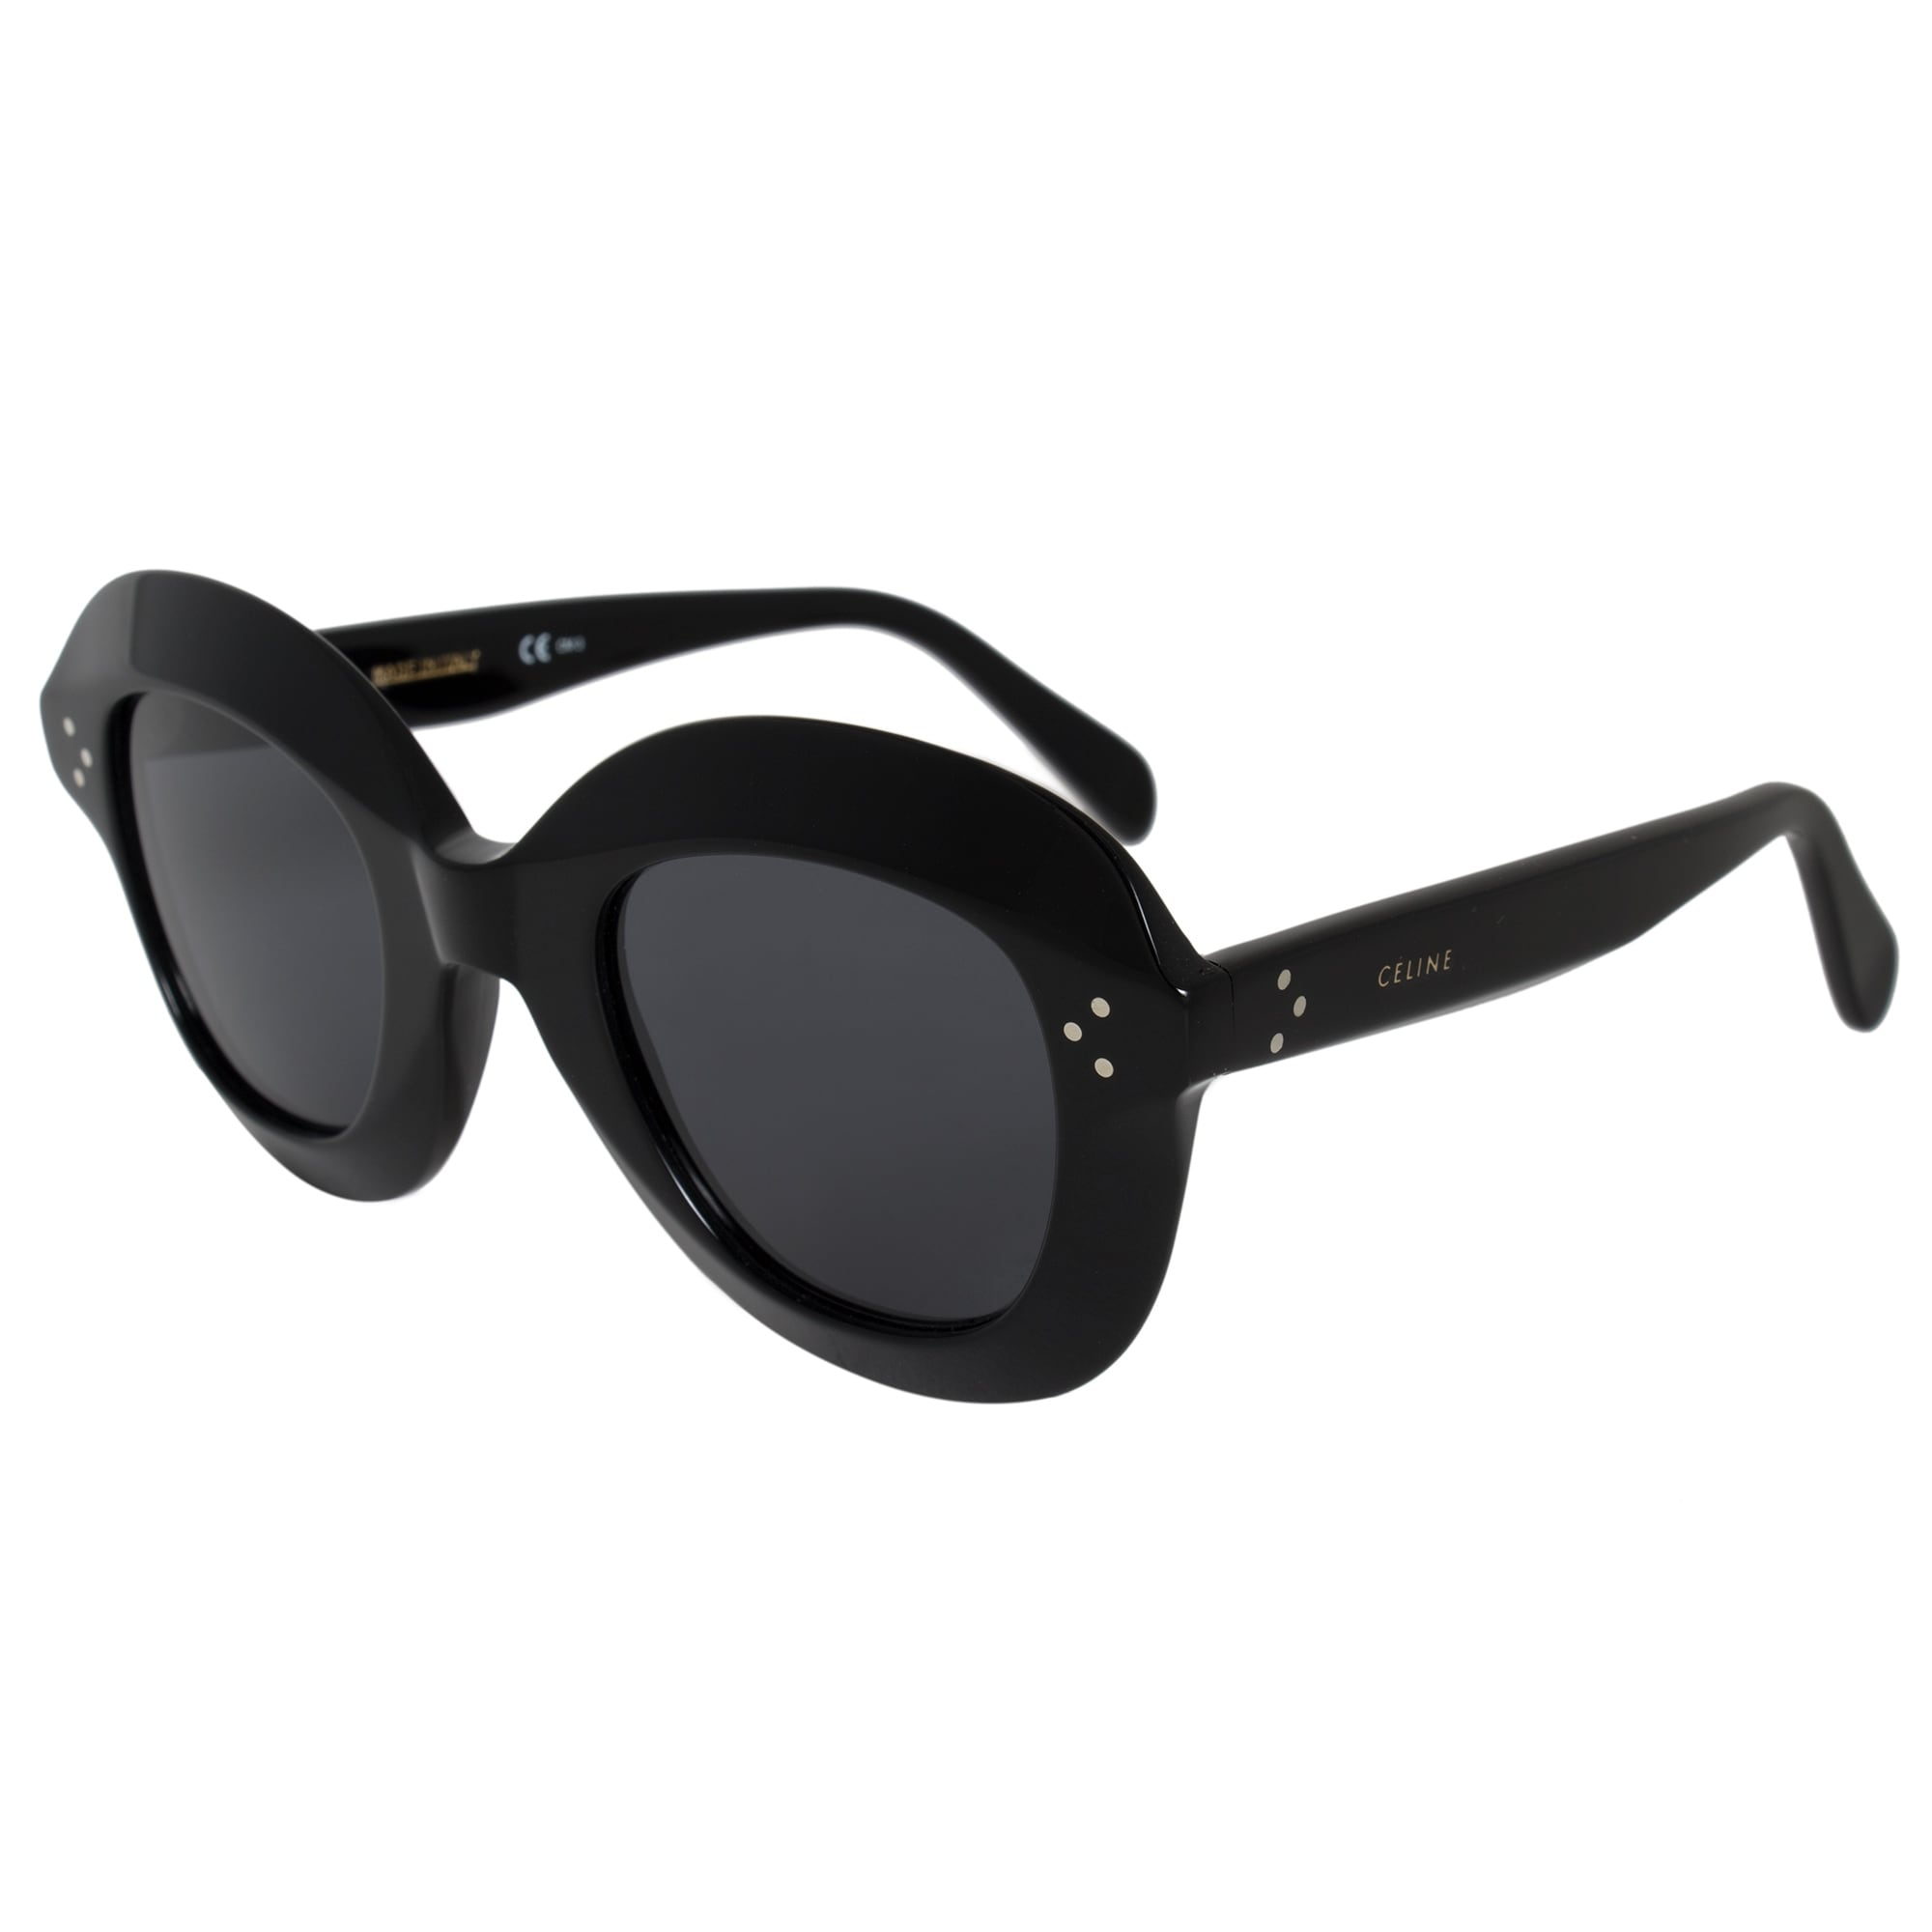 a634c63f2cb Shop Celine Lola Round Sunglasses 41445S 807 IR 46 - On Sale - Free  Shipping Today - Overstock - 19622825